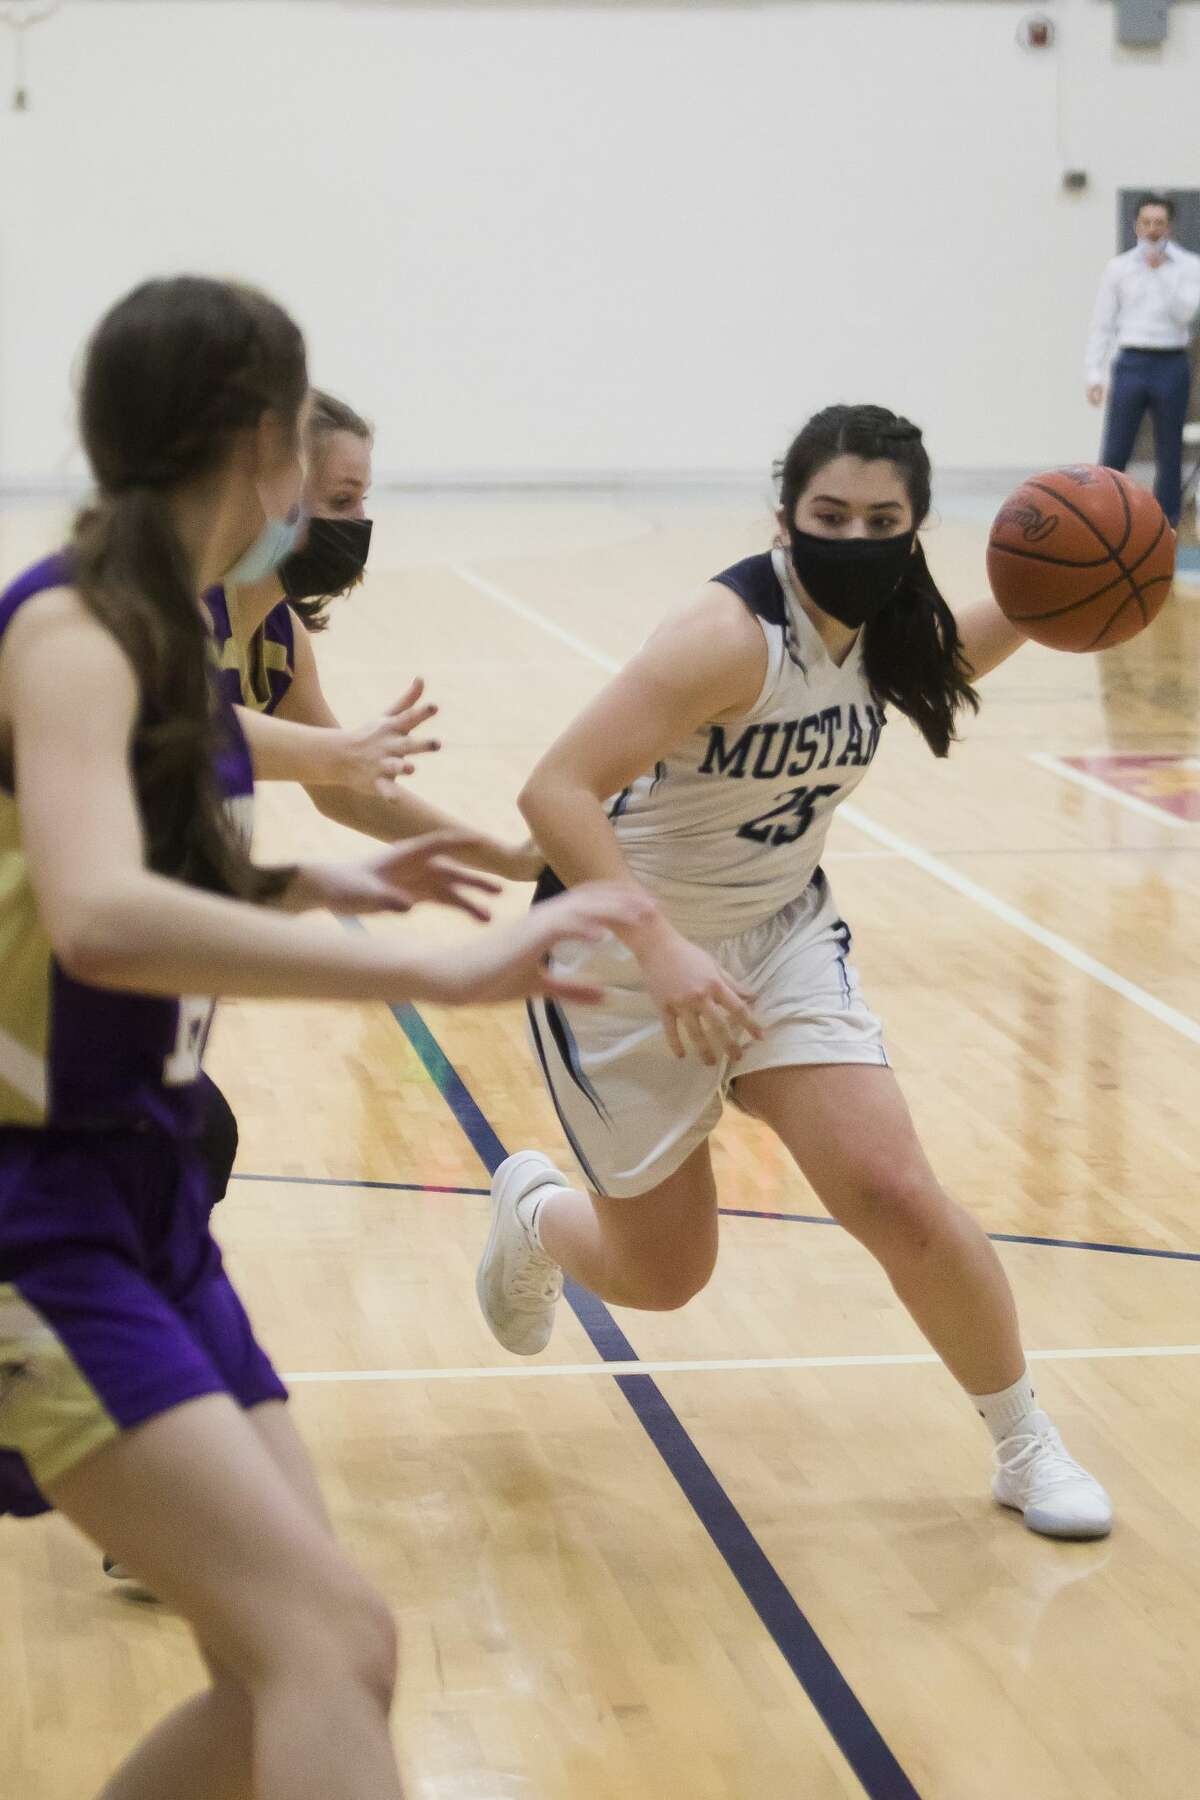 Meridian's Jenna Holzinger dribbles down the court during the Mustangs' game against Farwell Tuesday, Feb. 23, 2021 at Meridian Early College High School. (Katy Kildee/kkildee@mdn.net)